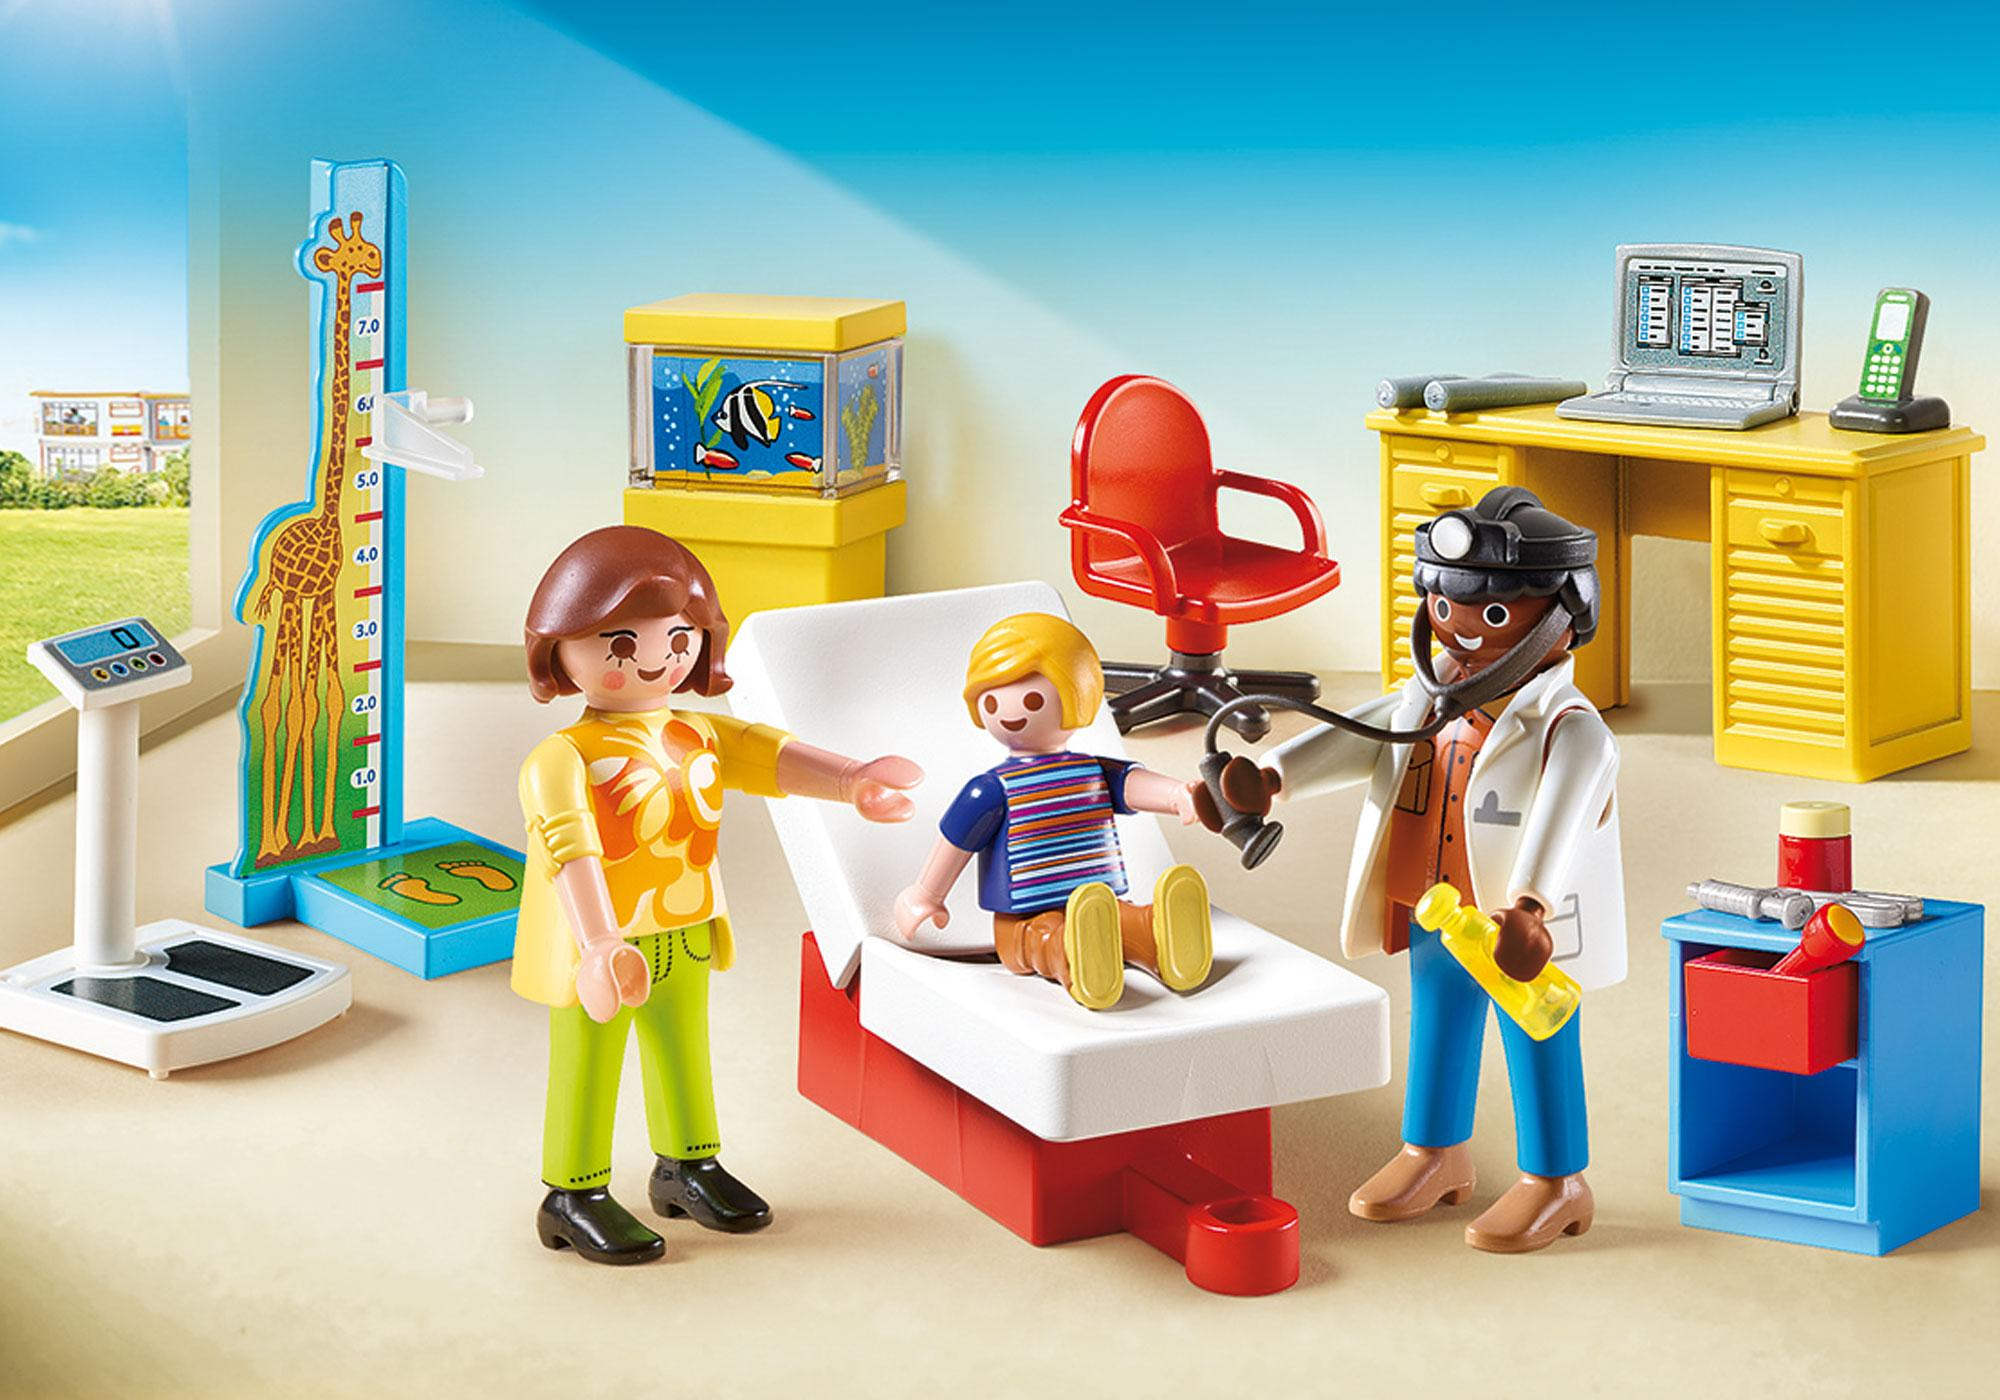 70034_product_detail/StarterPack  Pediatrician's Office